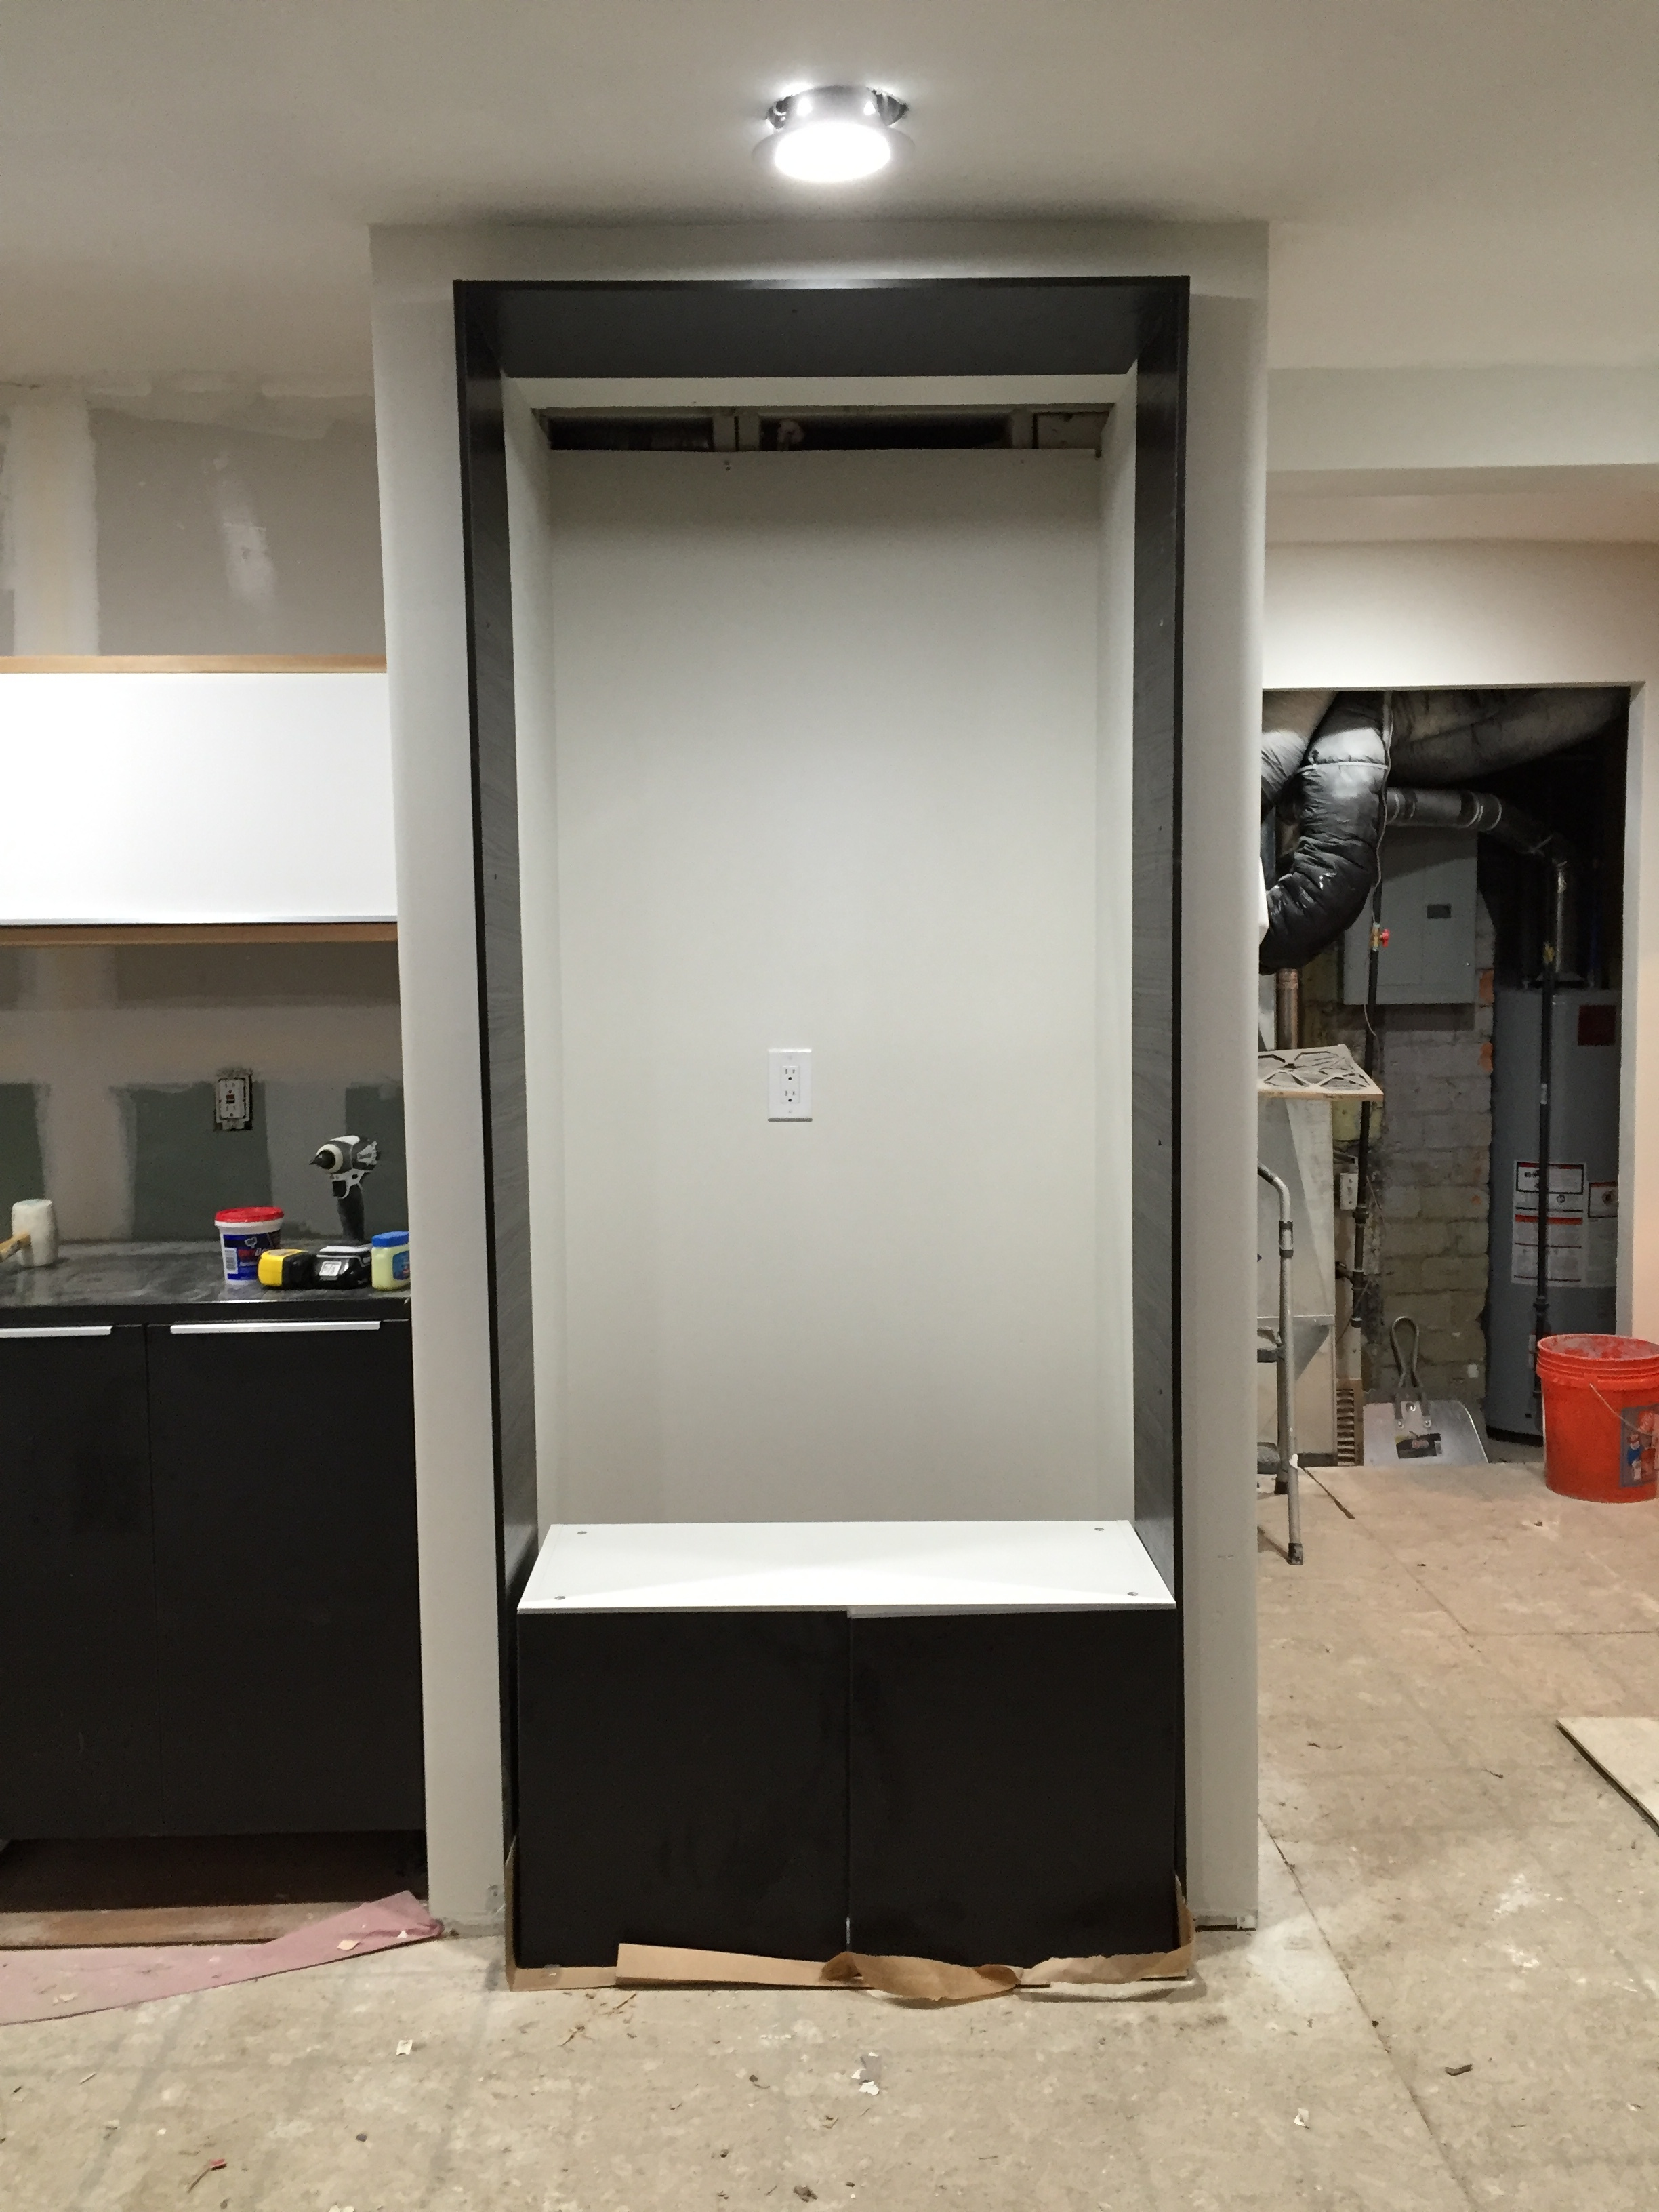 That cabinet on the floor will be above the refrigerator